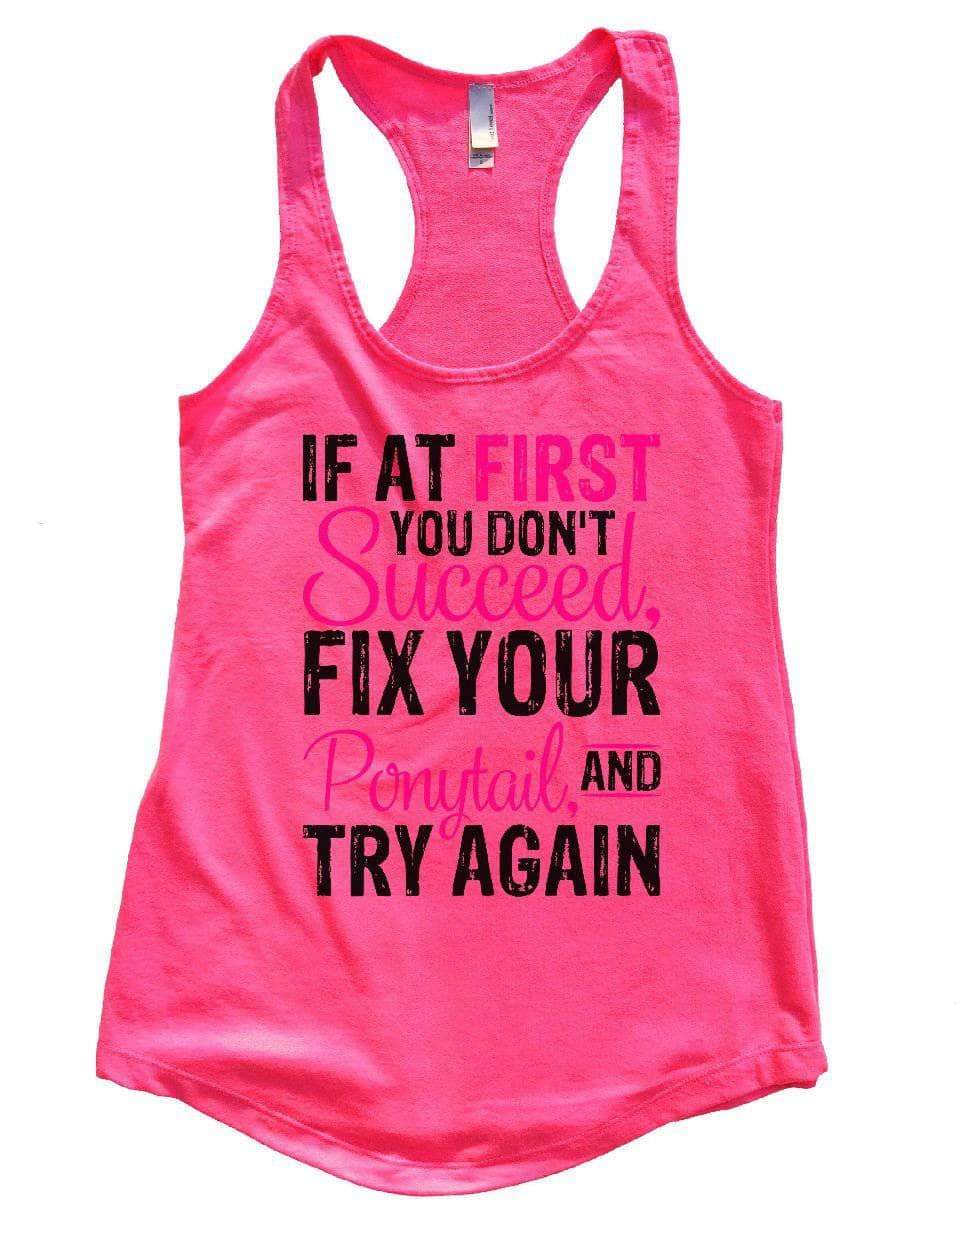 IF AT FIRST YOU DON'T Succeed, FIX YOUR Ponytail, AND TRY AGAIN Womens Workout Tank Top Small Womens Tank Tops Hot Pink